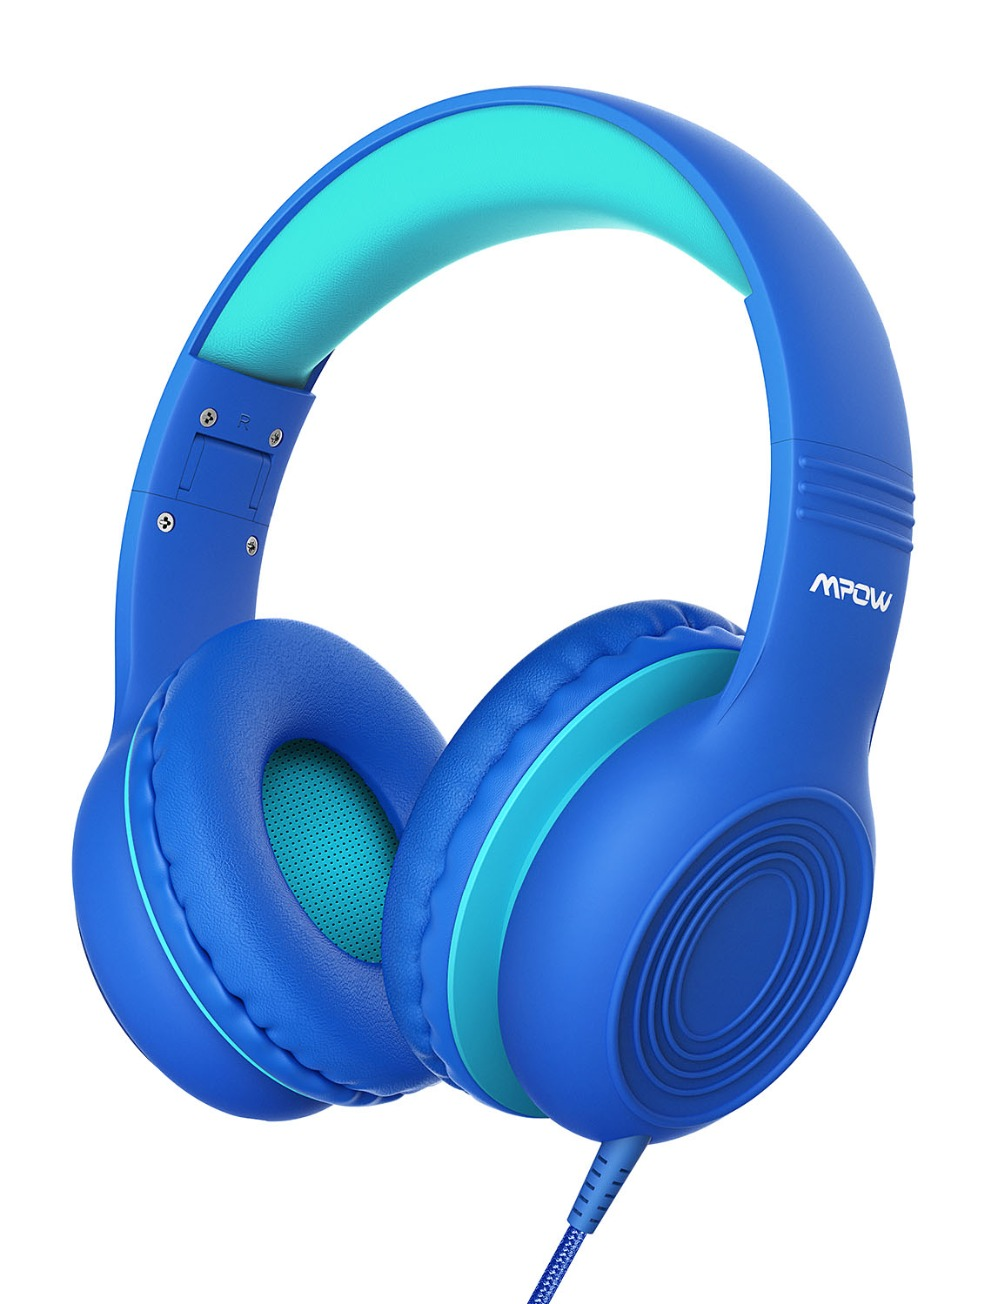 Mpow CH6 85dB Hearing Protection Headphones For Kids Over-Ear Kids Headphones With Microphone For PCiPadLaptopTabletsPhones (11)